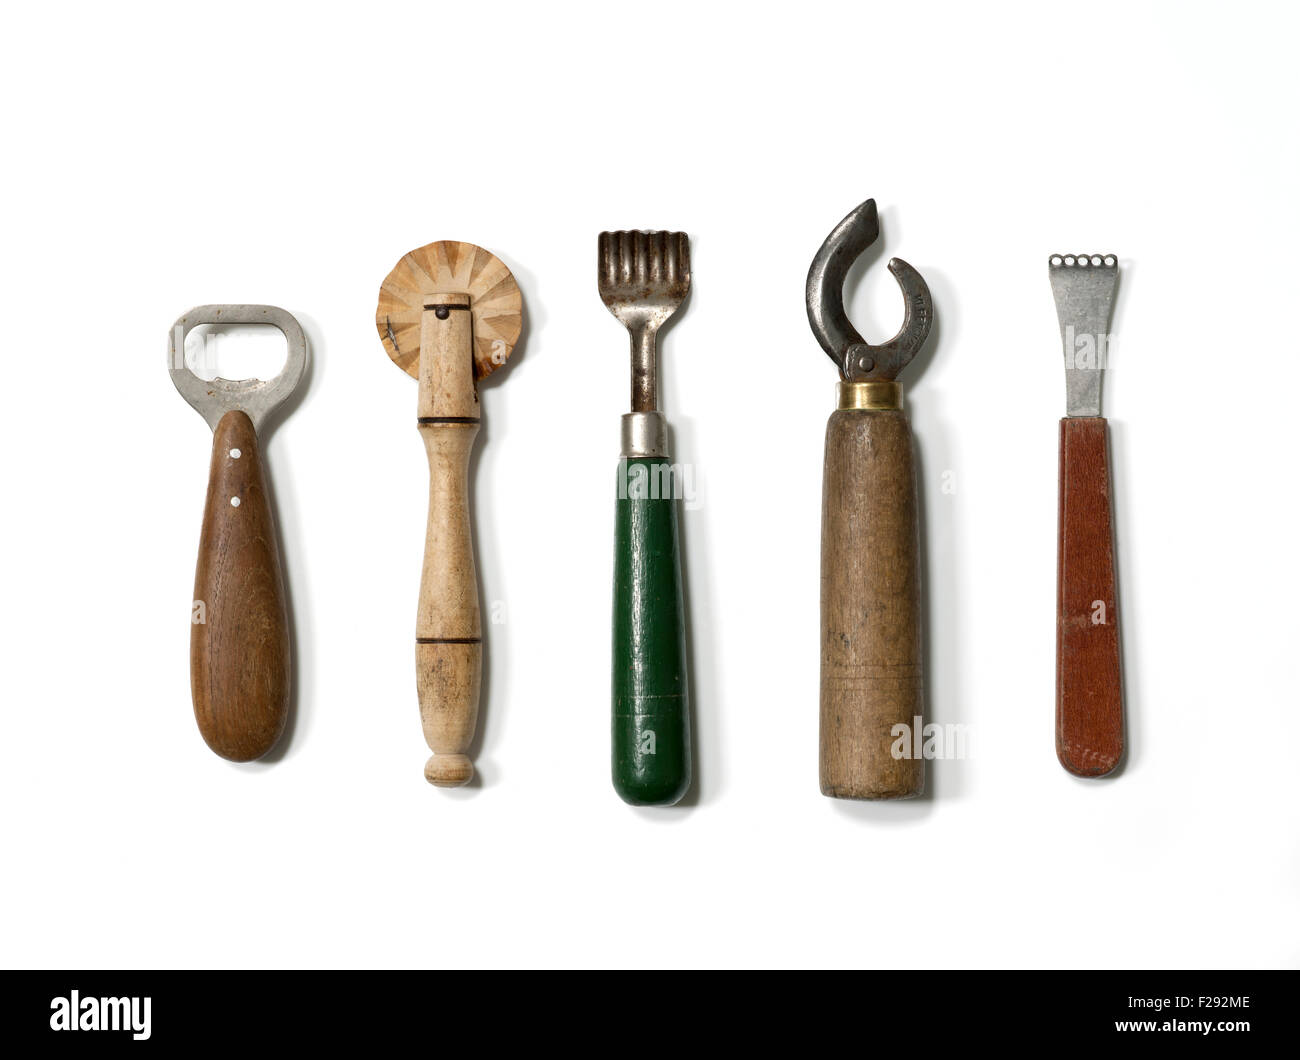 Charmant Vintage KItchen Tools Or Gadgets   Stock Image